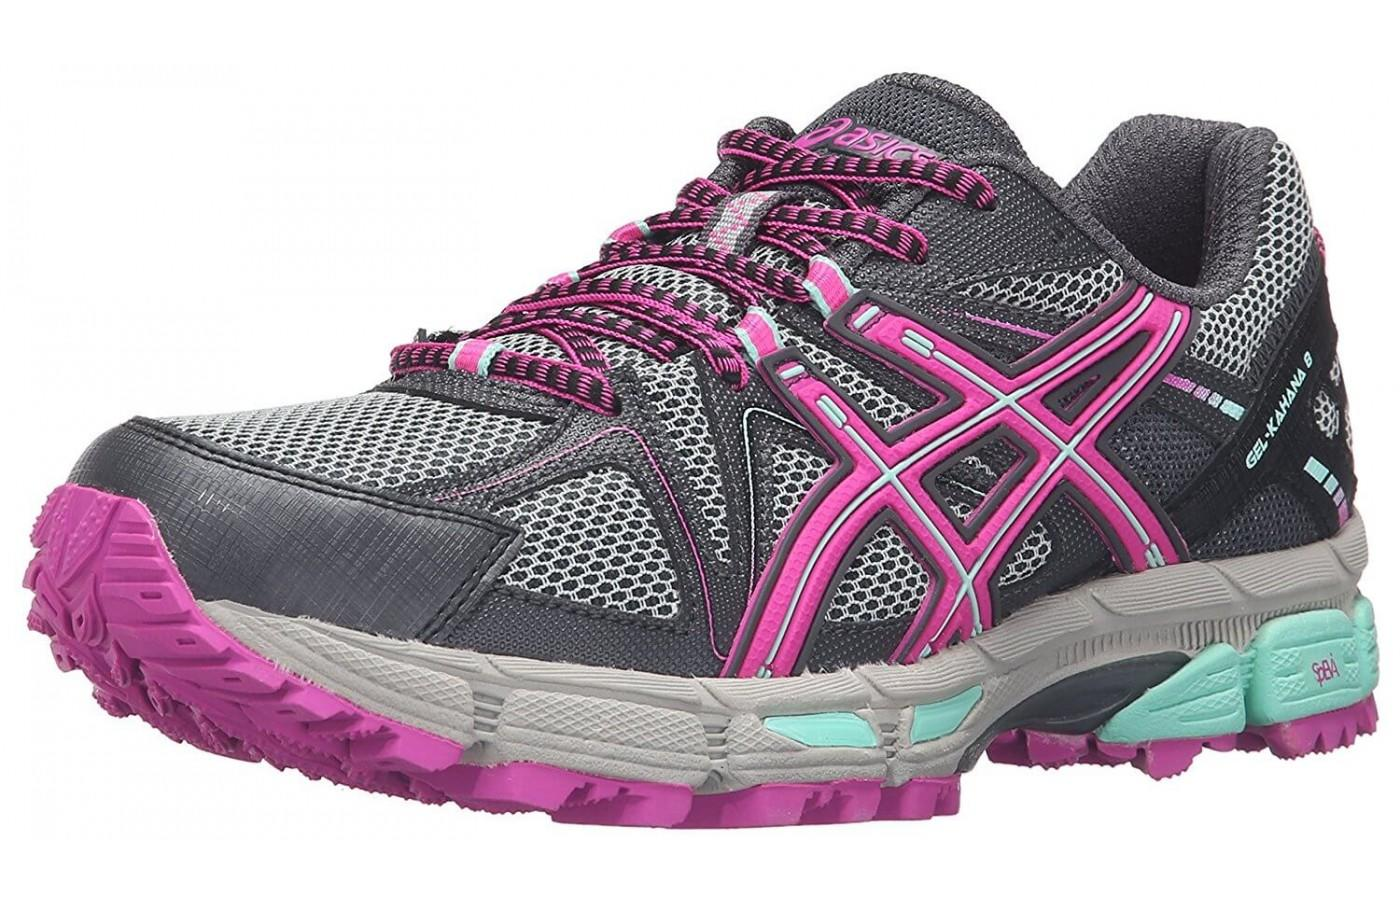 Asics presents the newest member of the Gel Kahana line with its 8th incarnation.